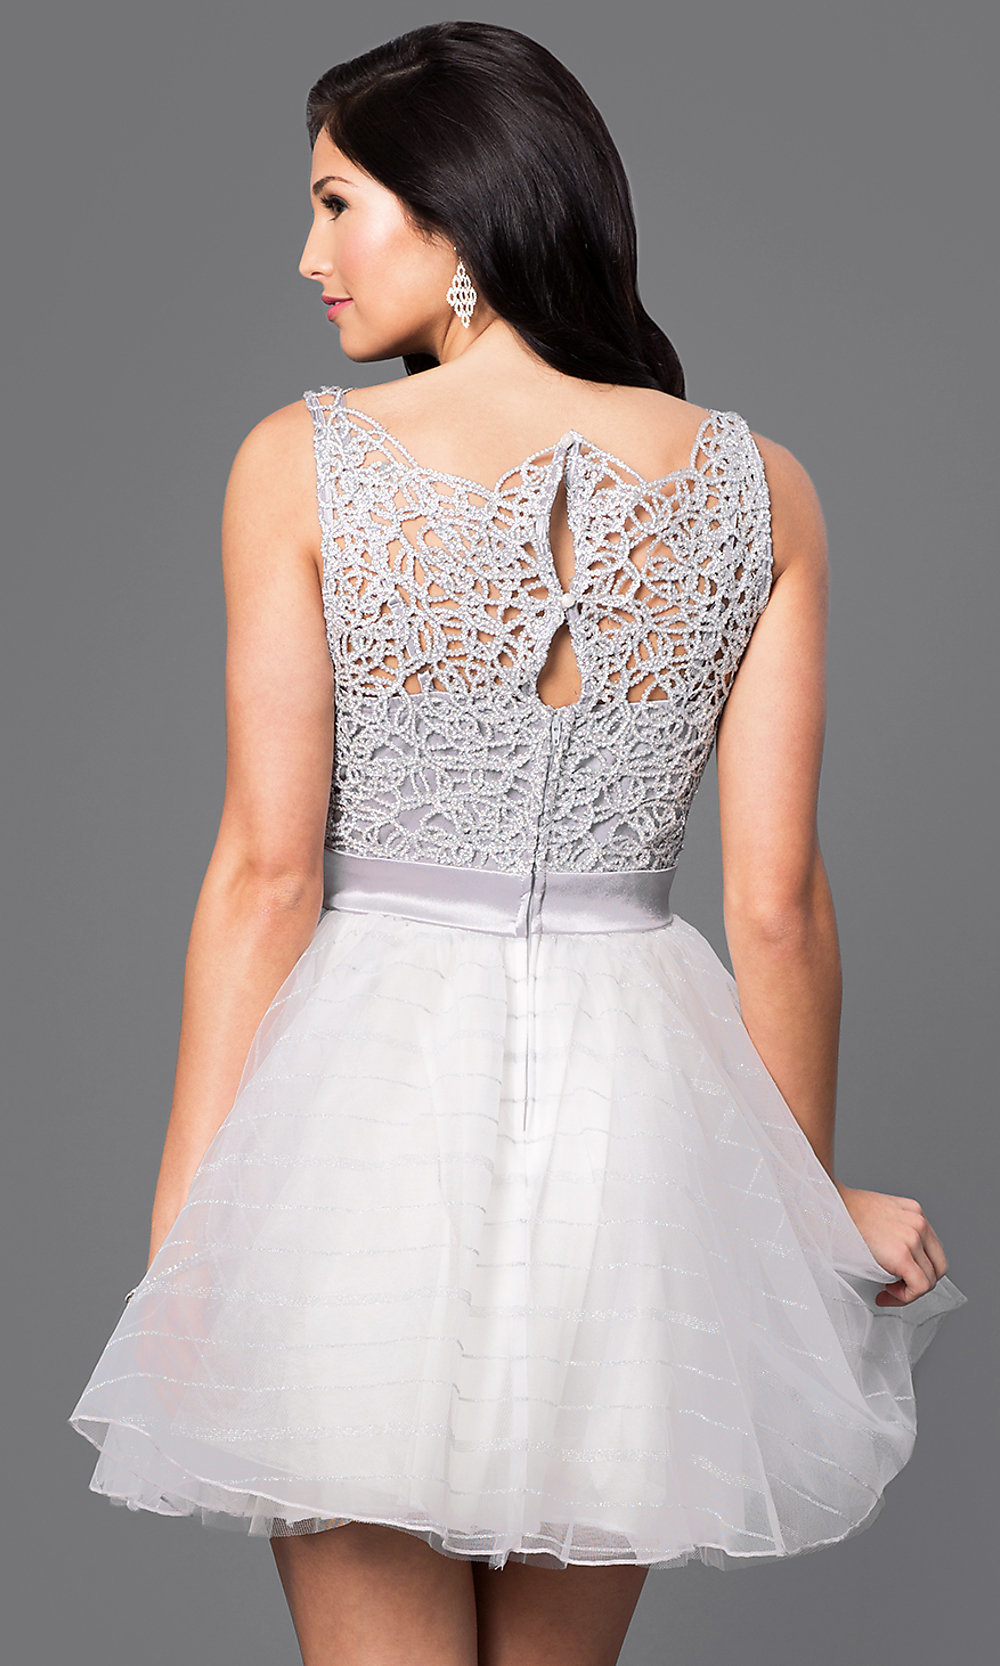 Short Silver Homecoming Party Dress Promgirl